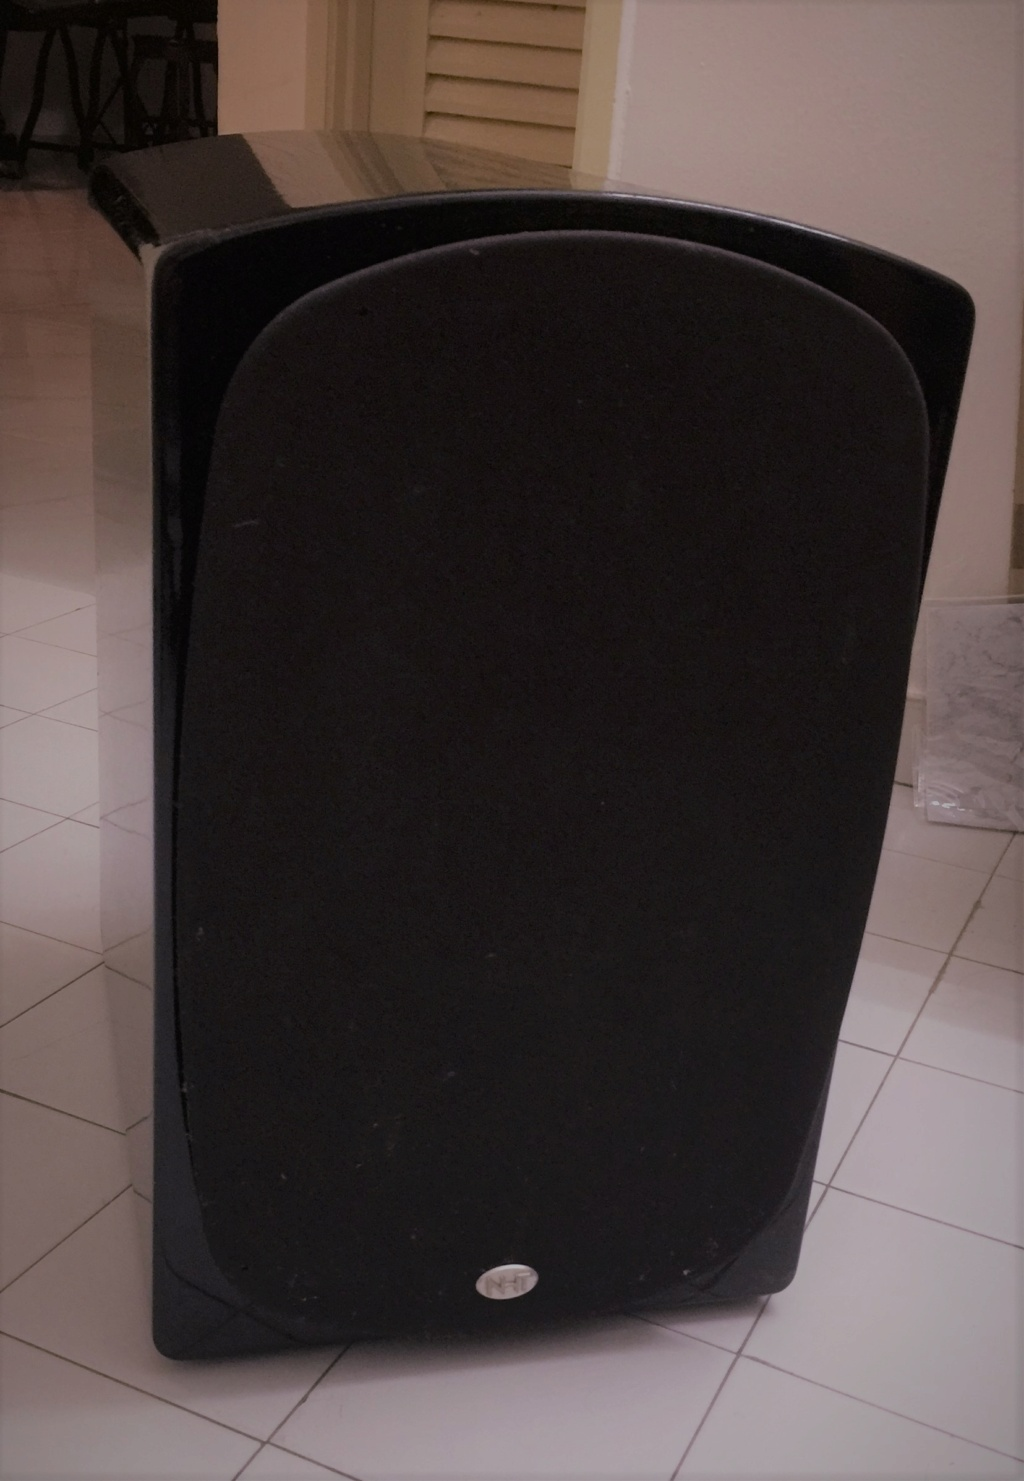 NHT10 Active subwoofer 135